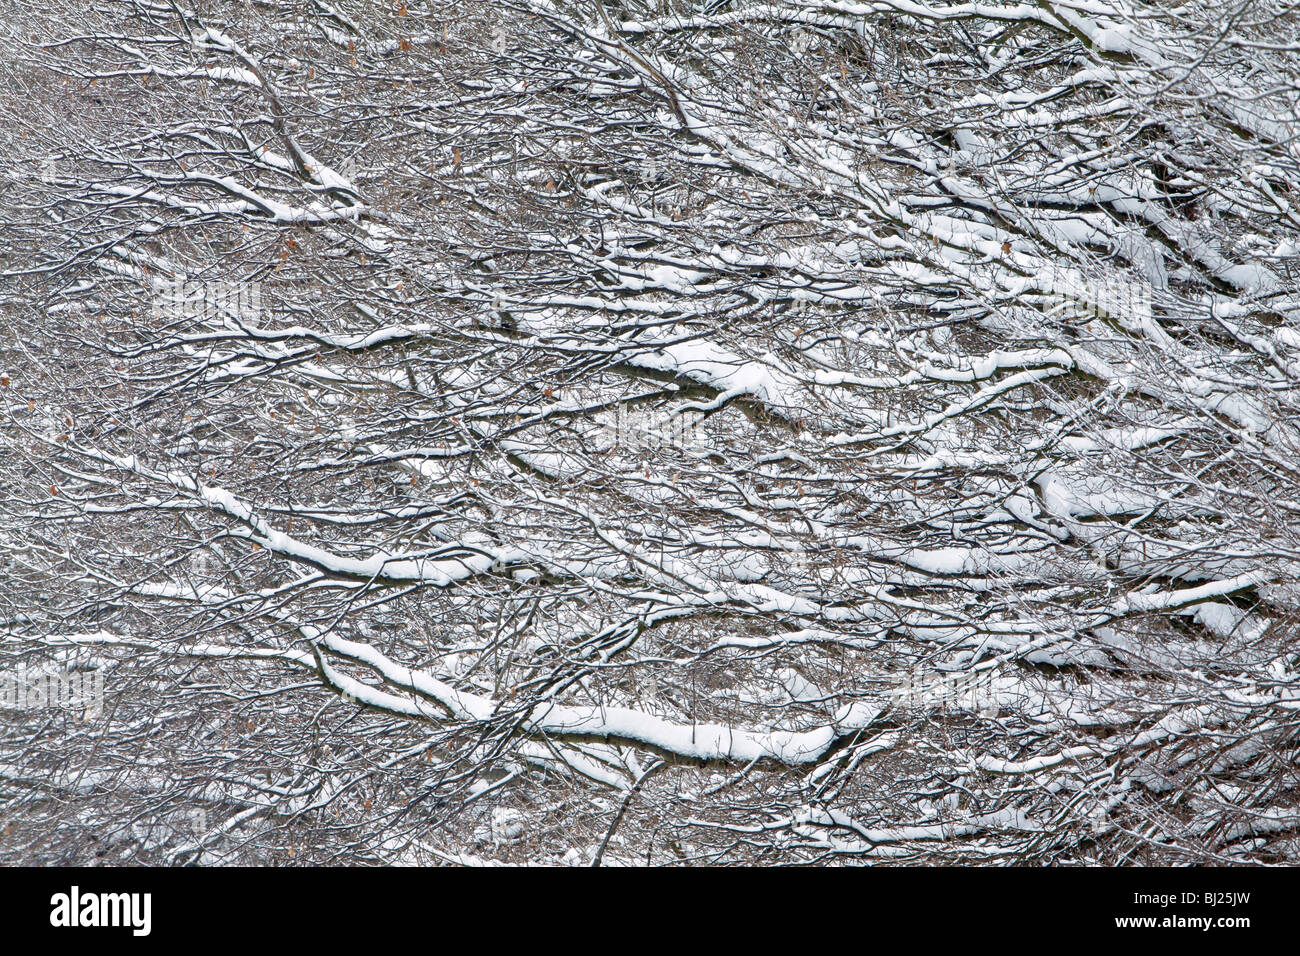 Oak tree, Quercus robur, branches covered in snow, winter - Stock Image